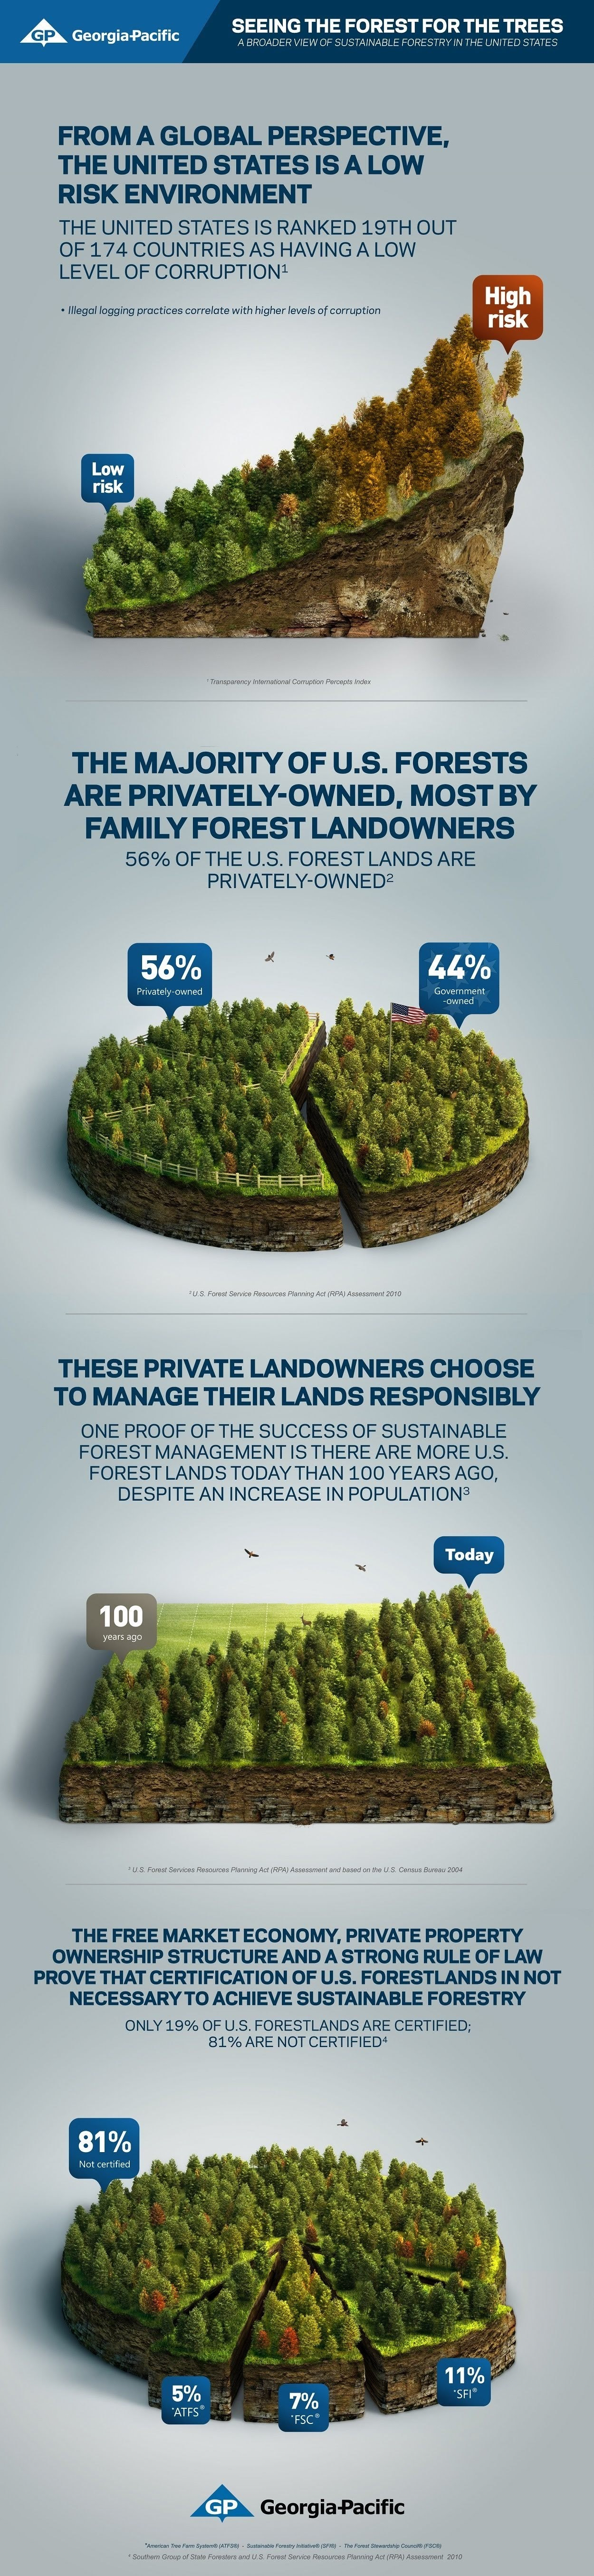 Georgia-pacific Sees The Forest For The Trees #infographic